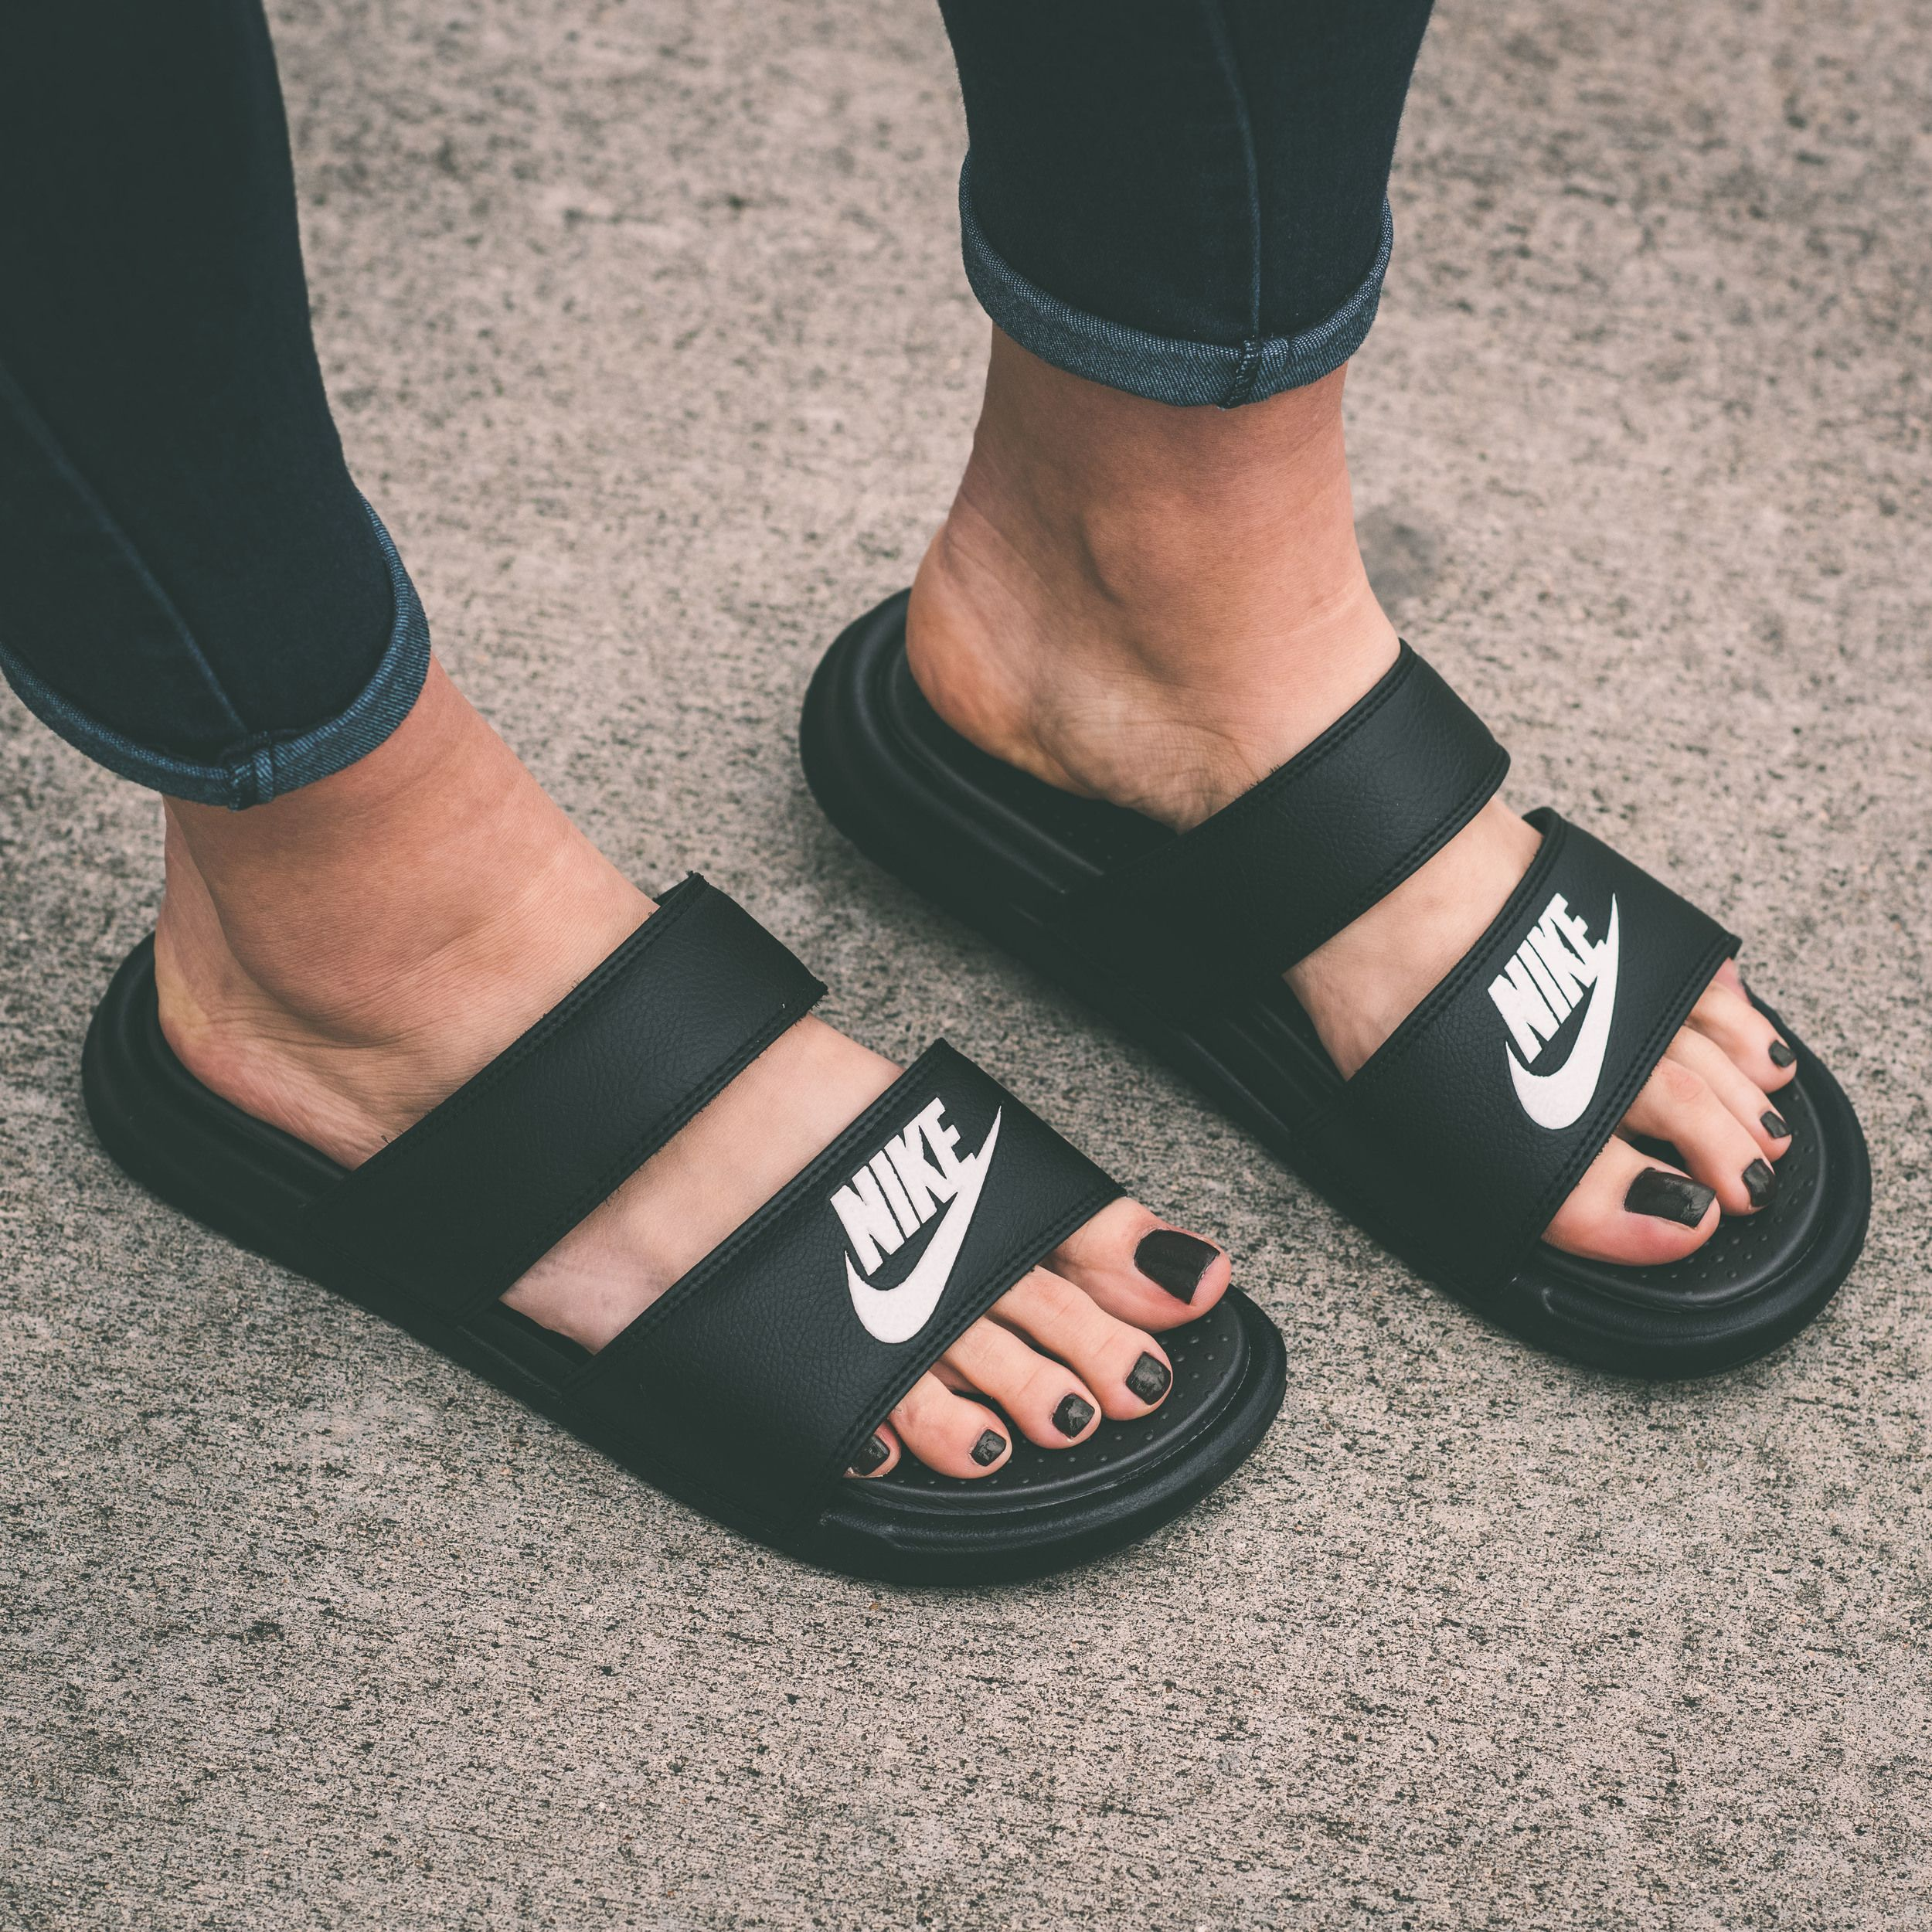 Shoess WMNS BENASSI ULTRA SLIDE NIKE Pinterest DUO xRXaf